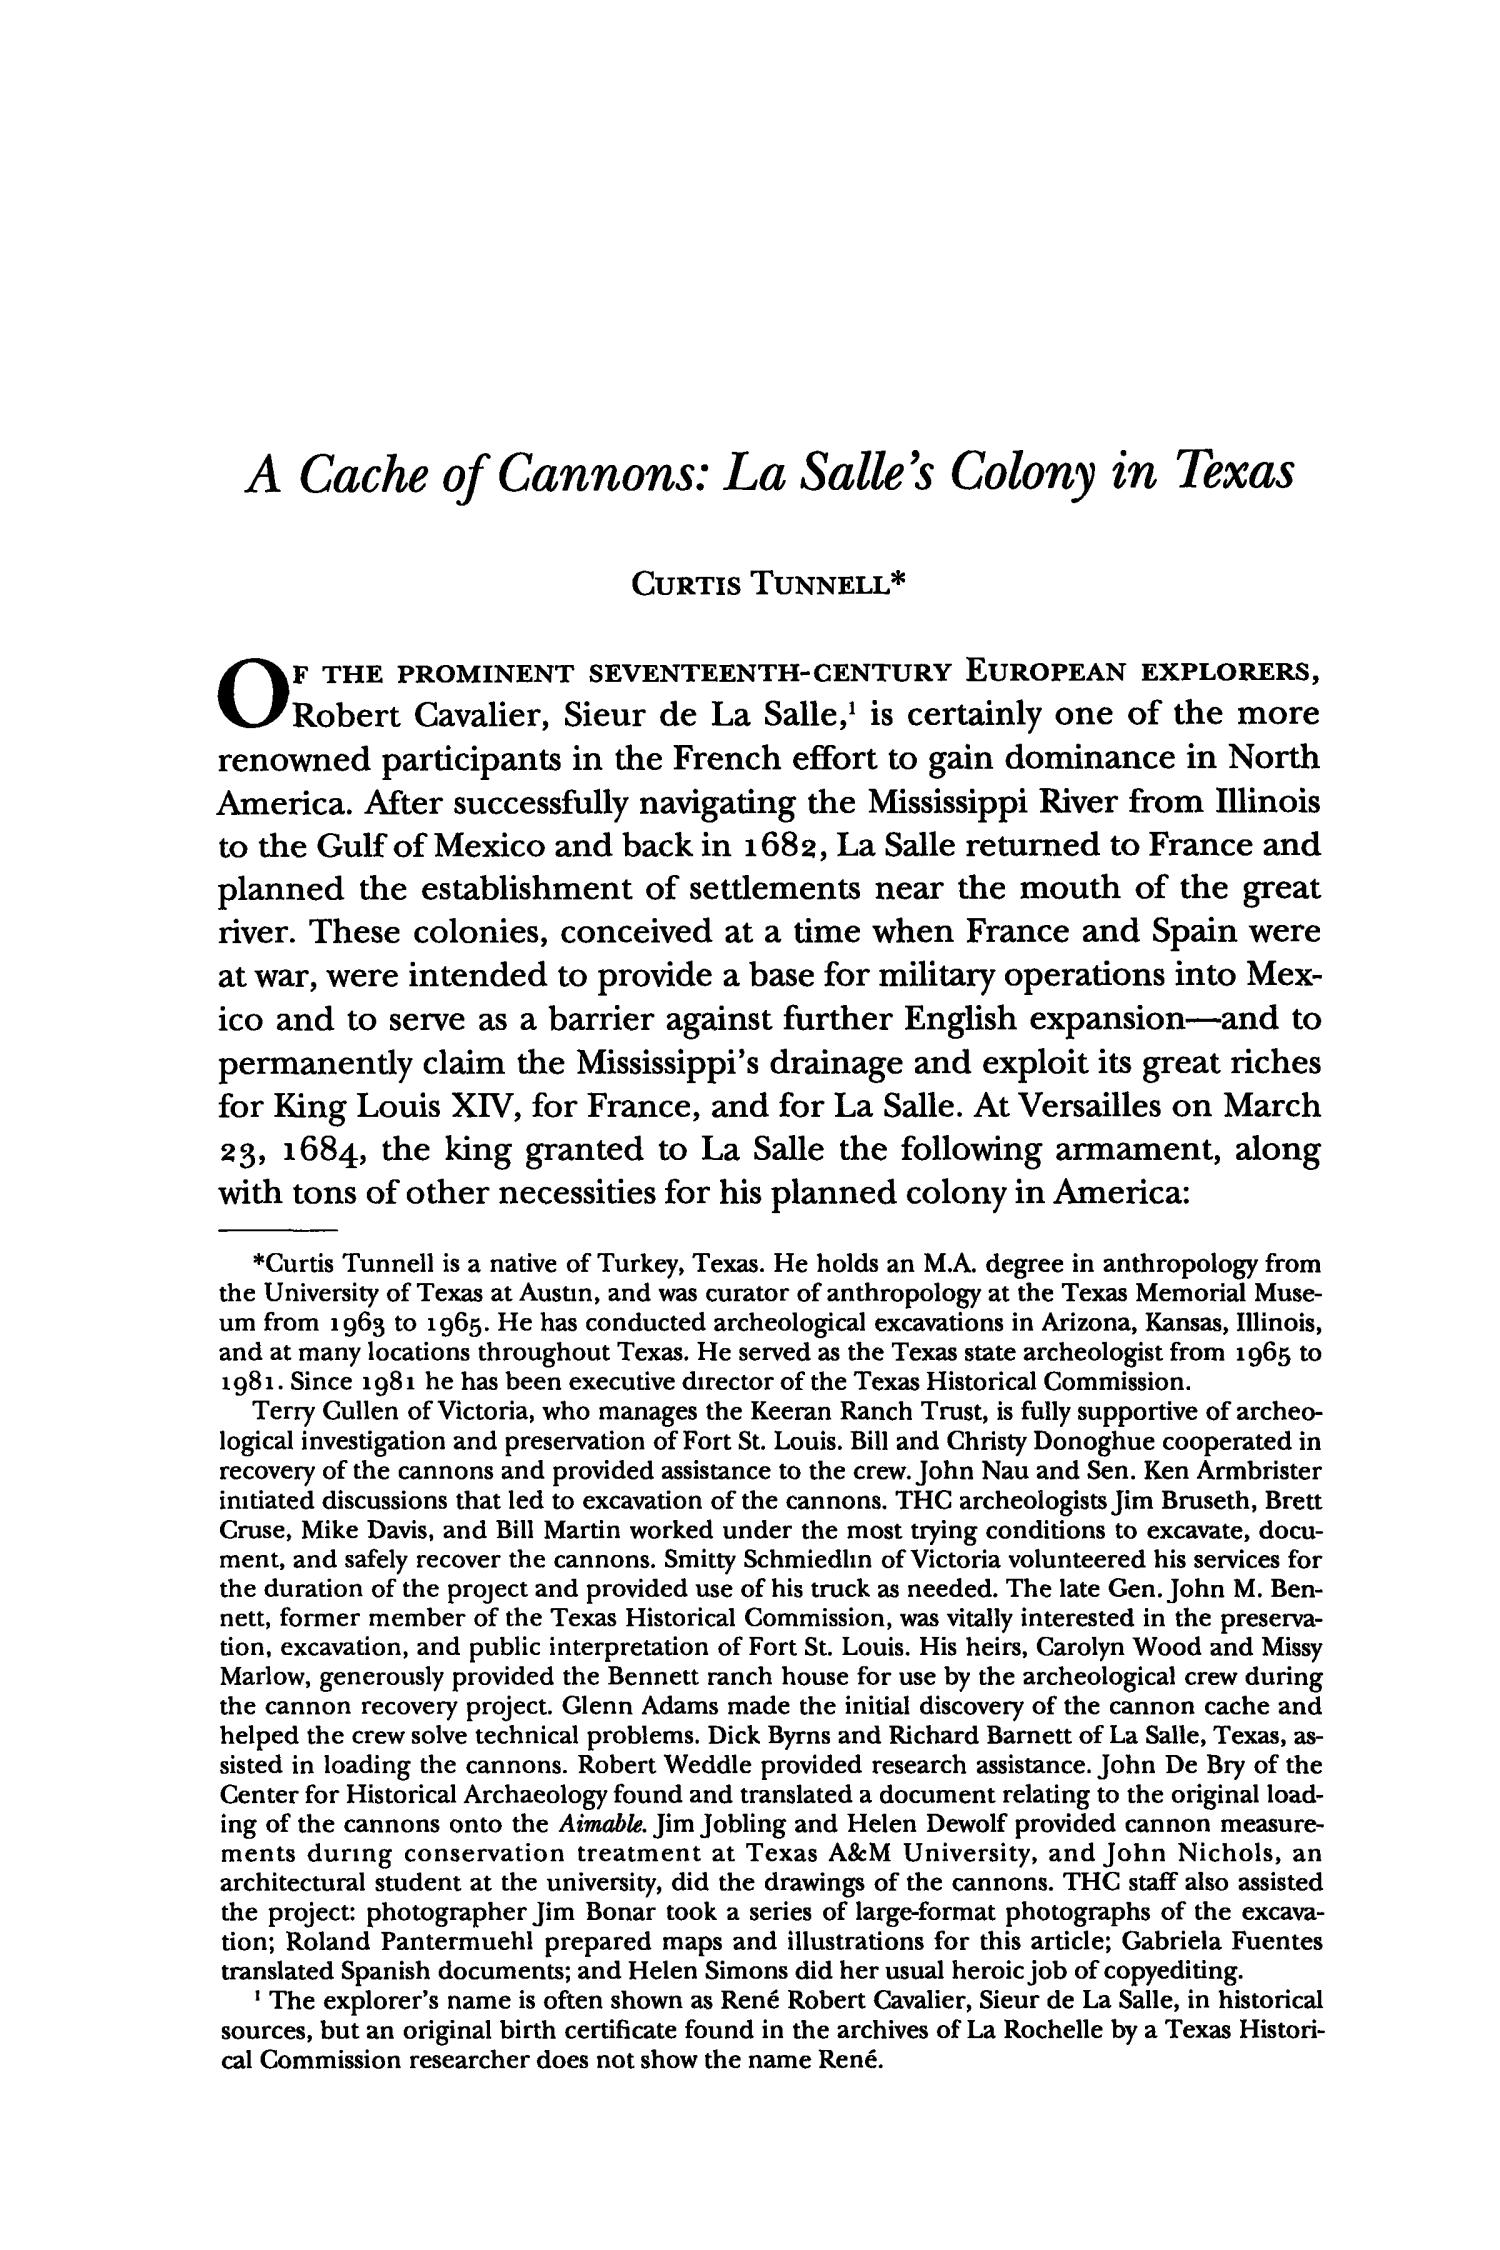 The Southwestern Historical Quarterly, Volume 102, July 1998 - April, 1999                                                                                                      19